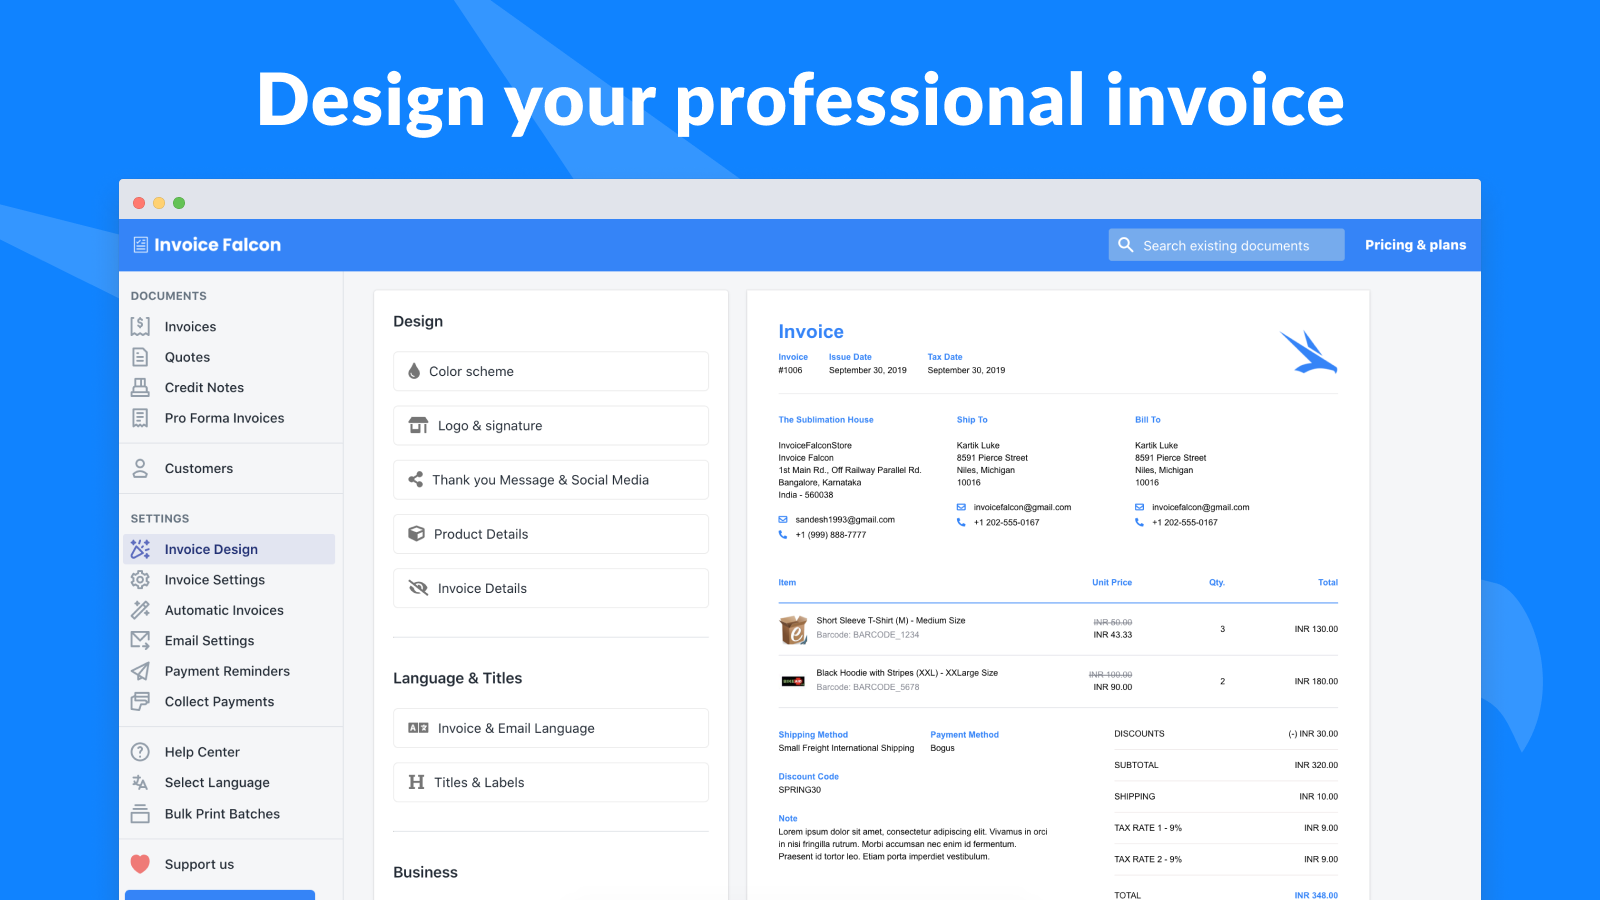 Easily design your professional invoice in a few clicks